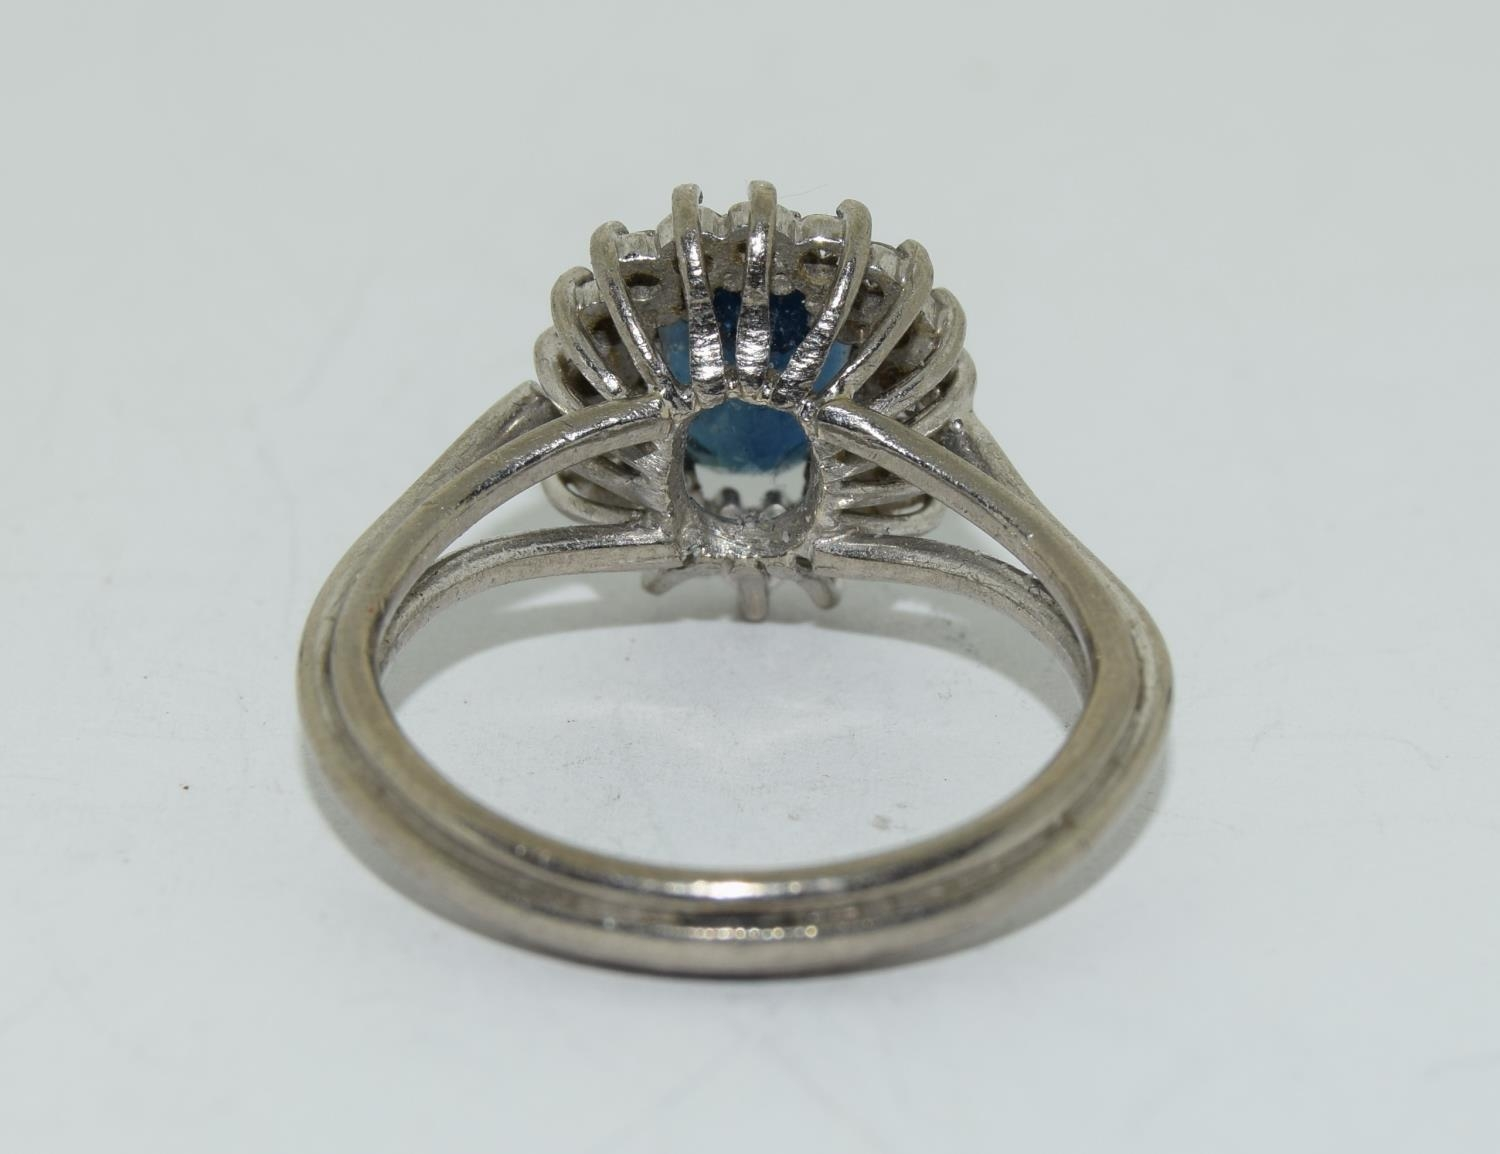 An 18ct white gold ladies diamond and sapphire ring, Size L - Image 3 of 6